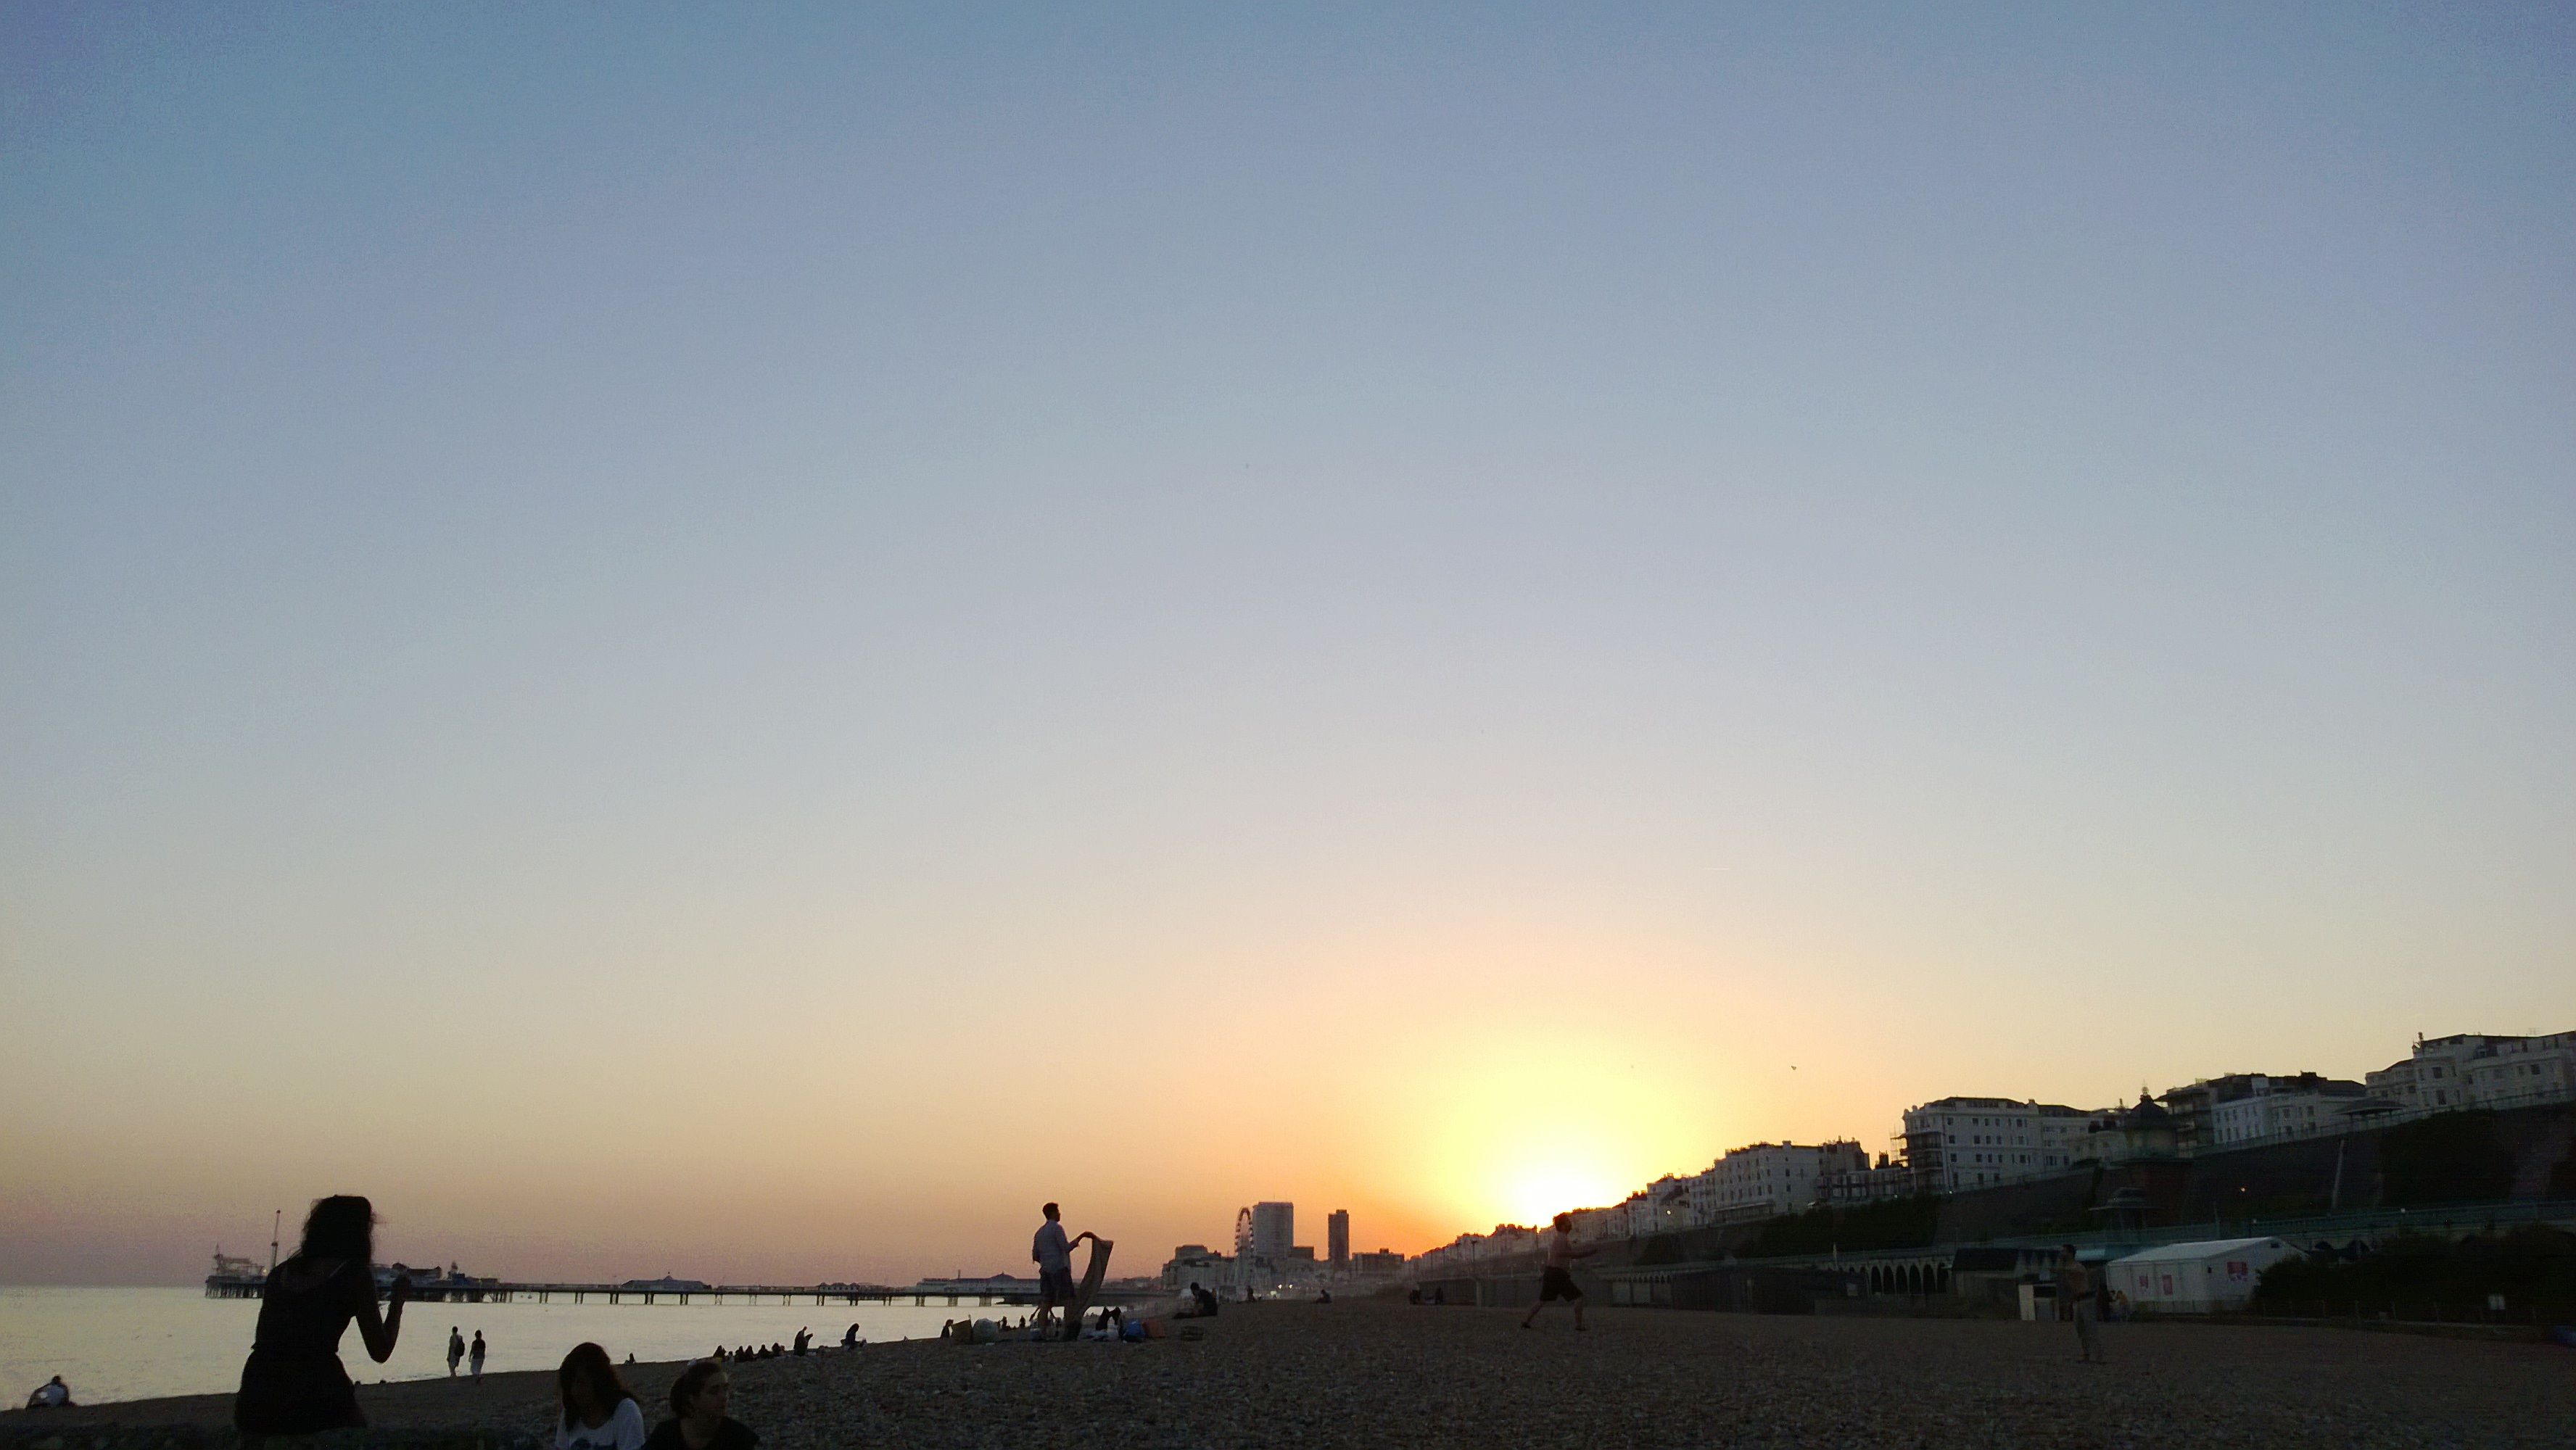 romantic sunset, Brighton beach, barbecue :*